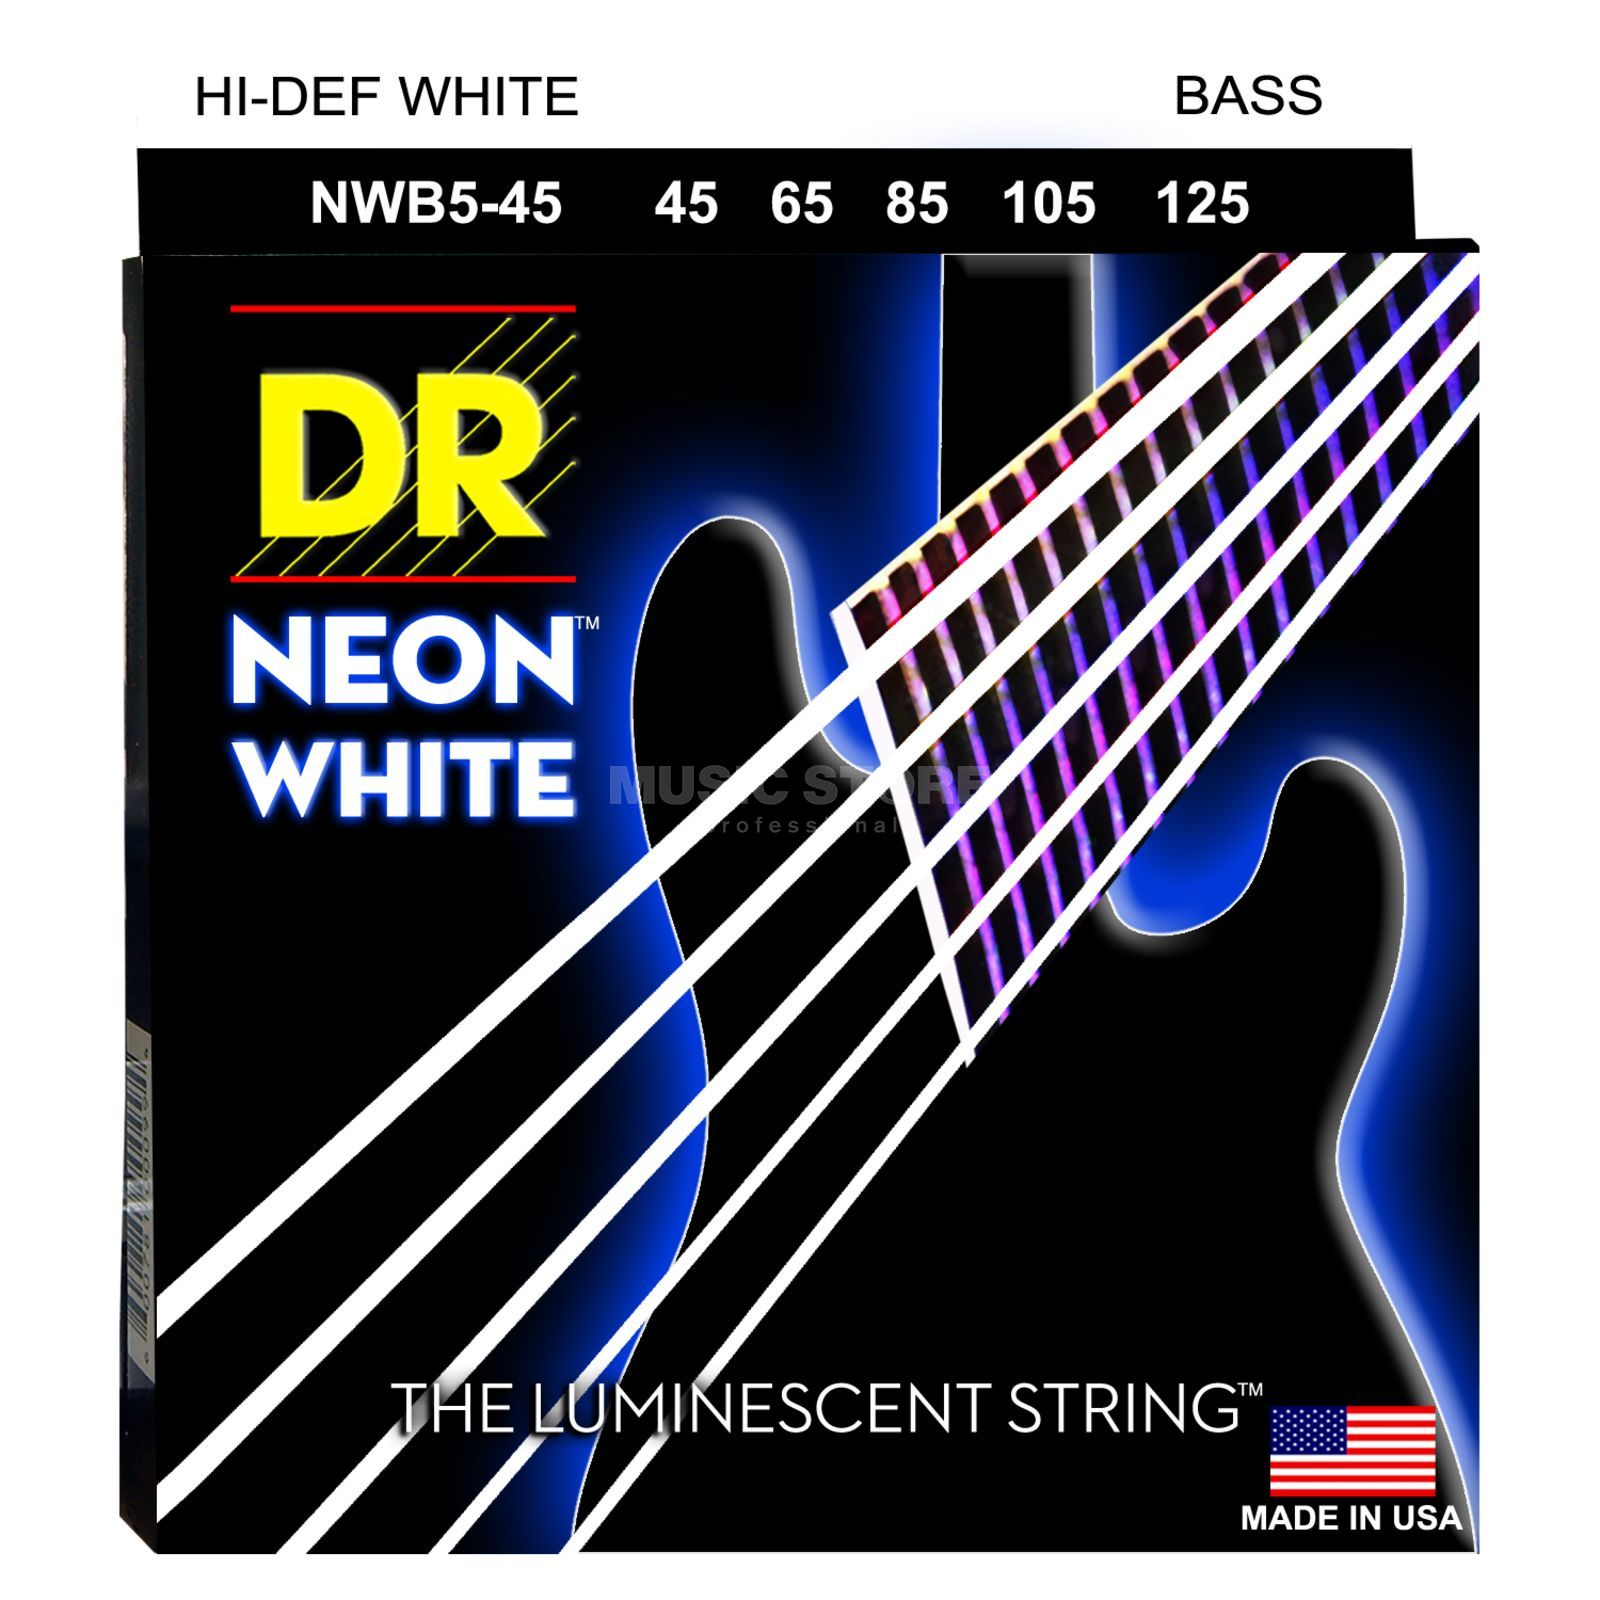 DR 6er Bass 45-125 Hi-Def Neon White Neon NWB5-45 Product Image